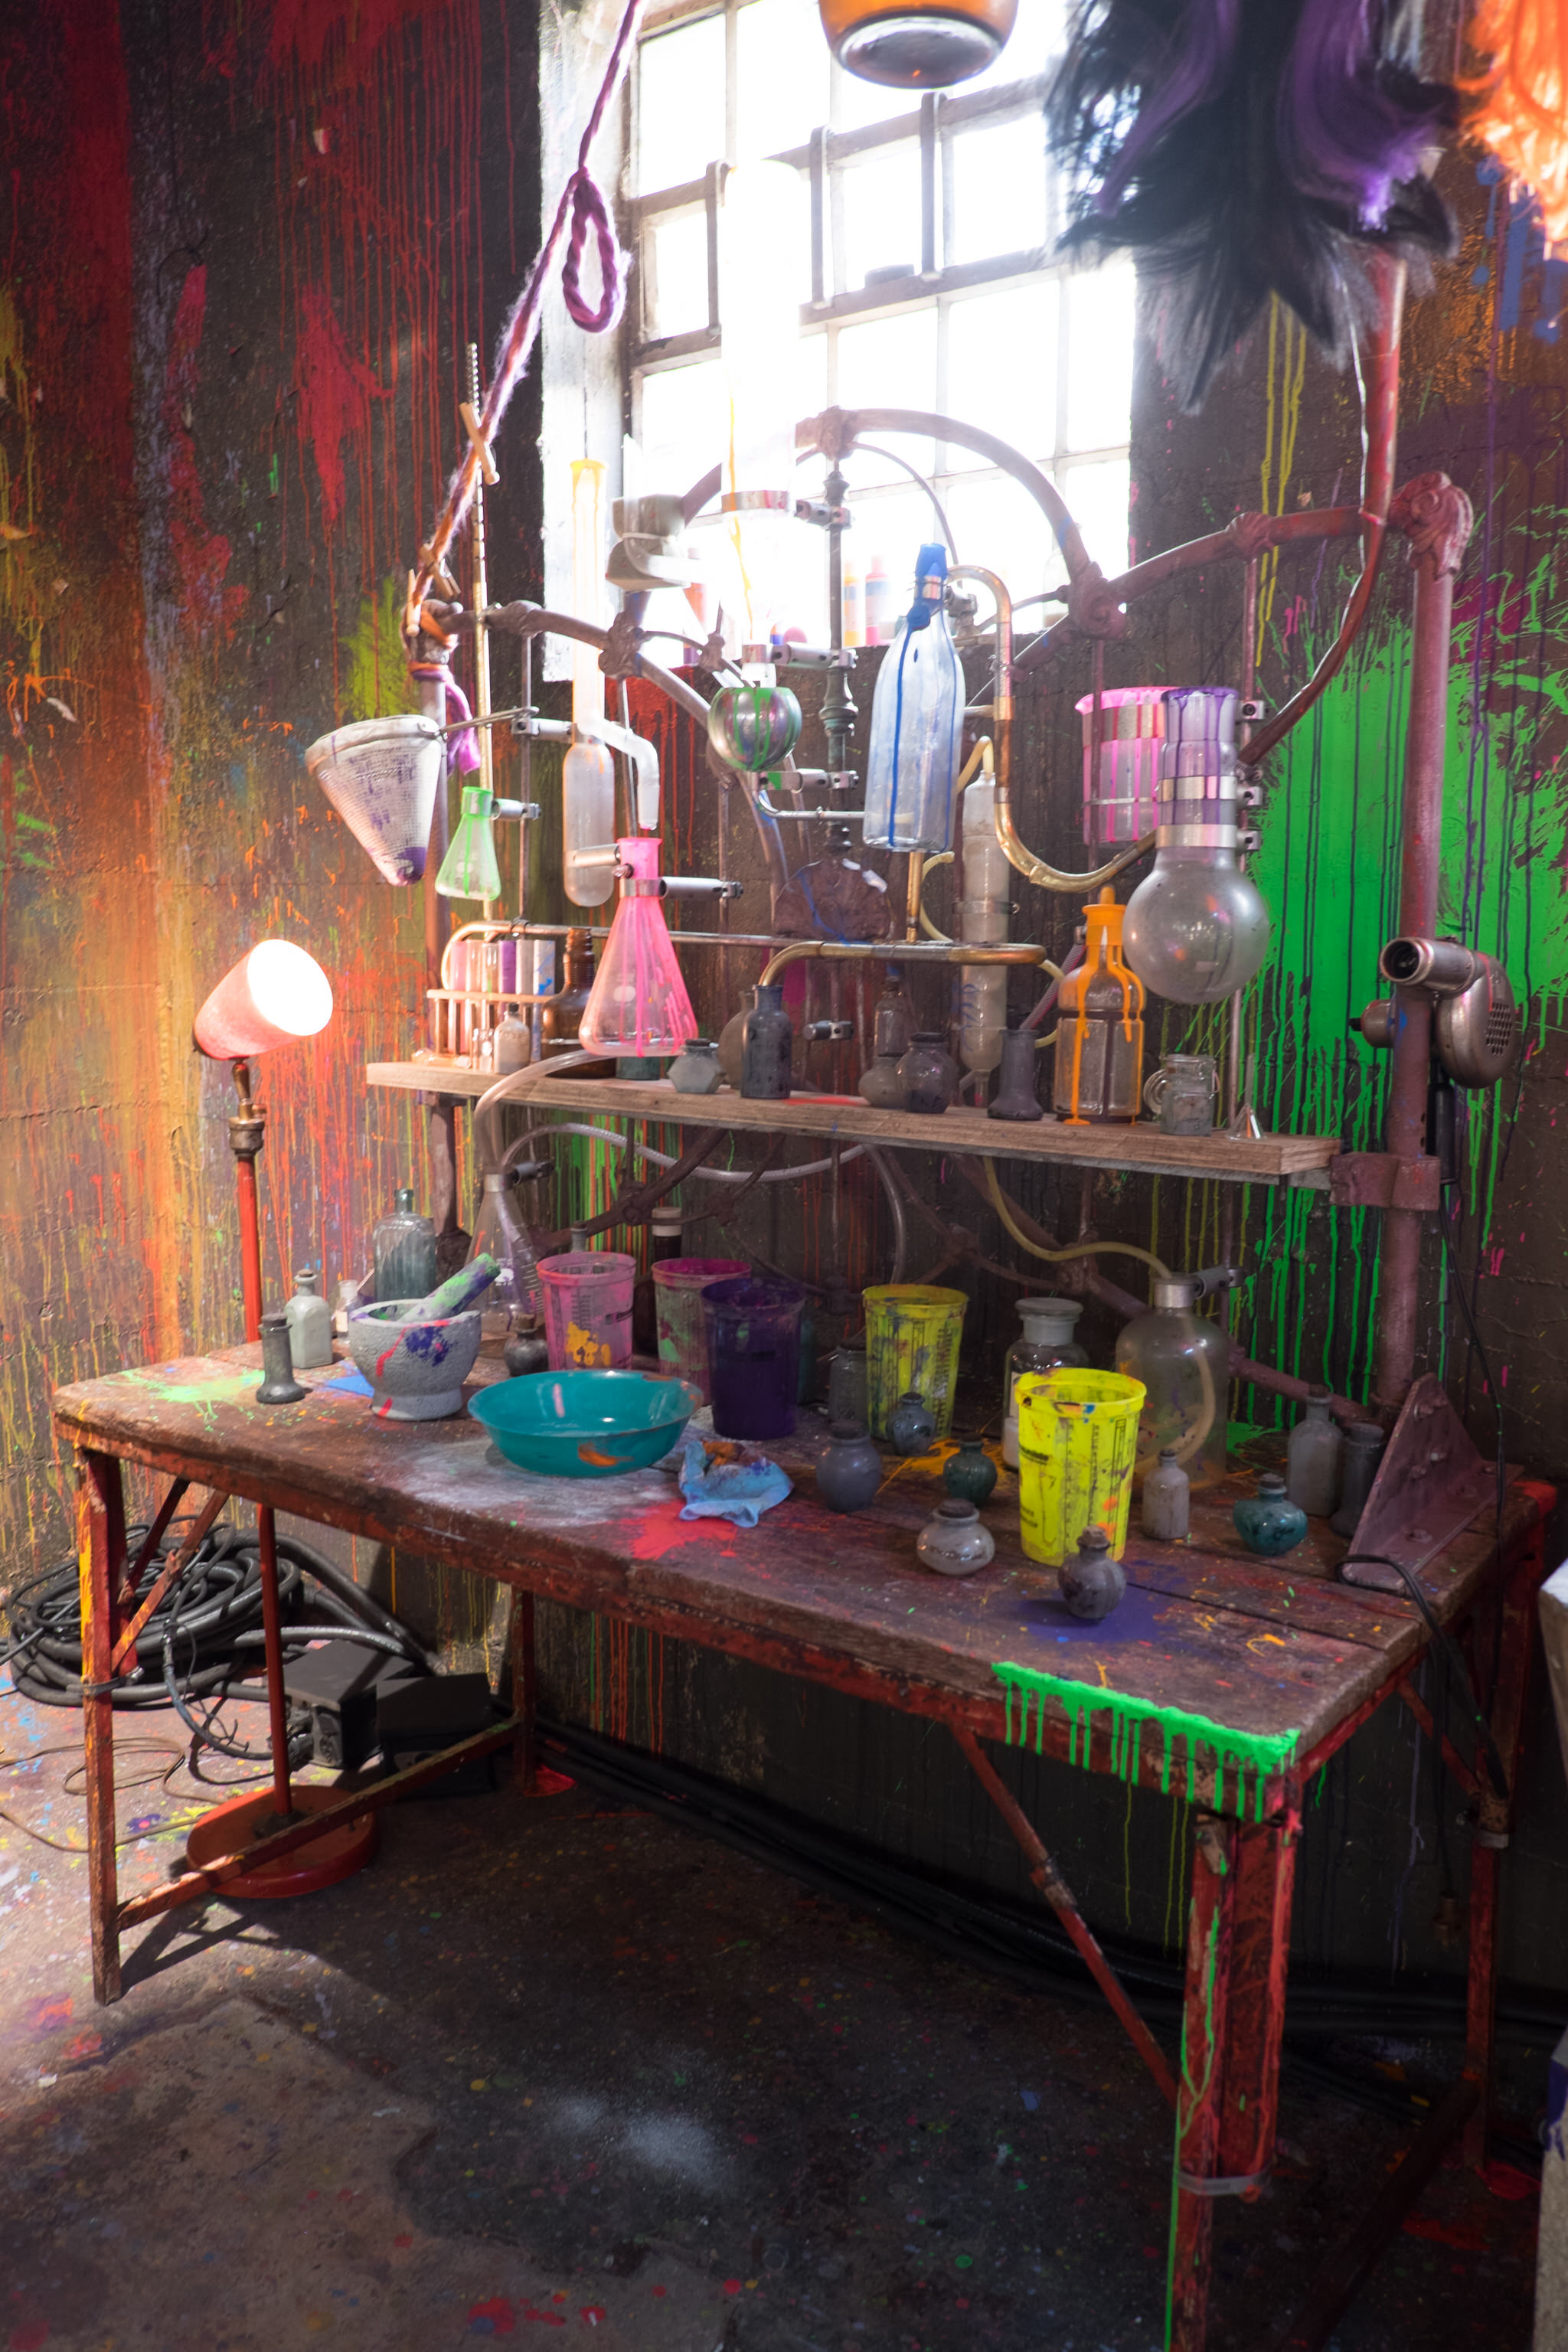 A detail of the dry chemistry set up in Drizella's Curl Up and Dye on the Isle of the Lost.